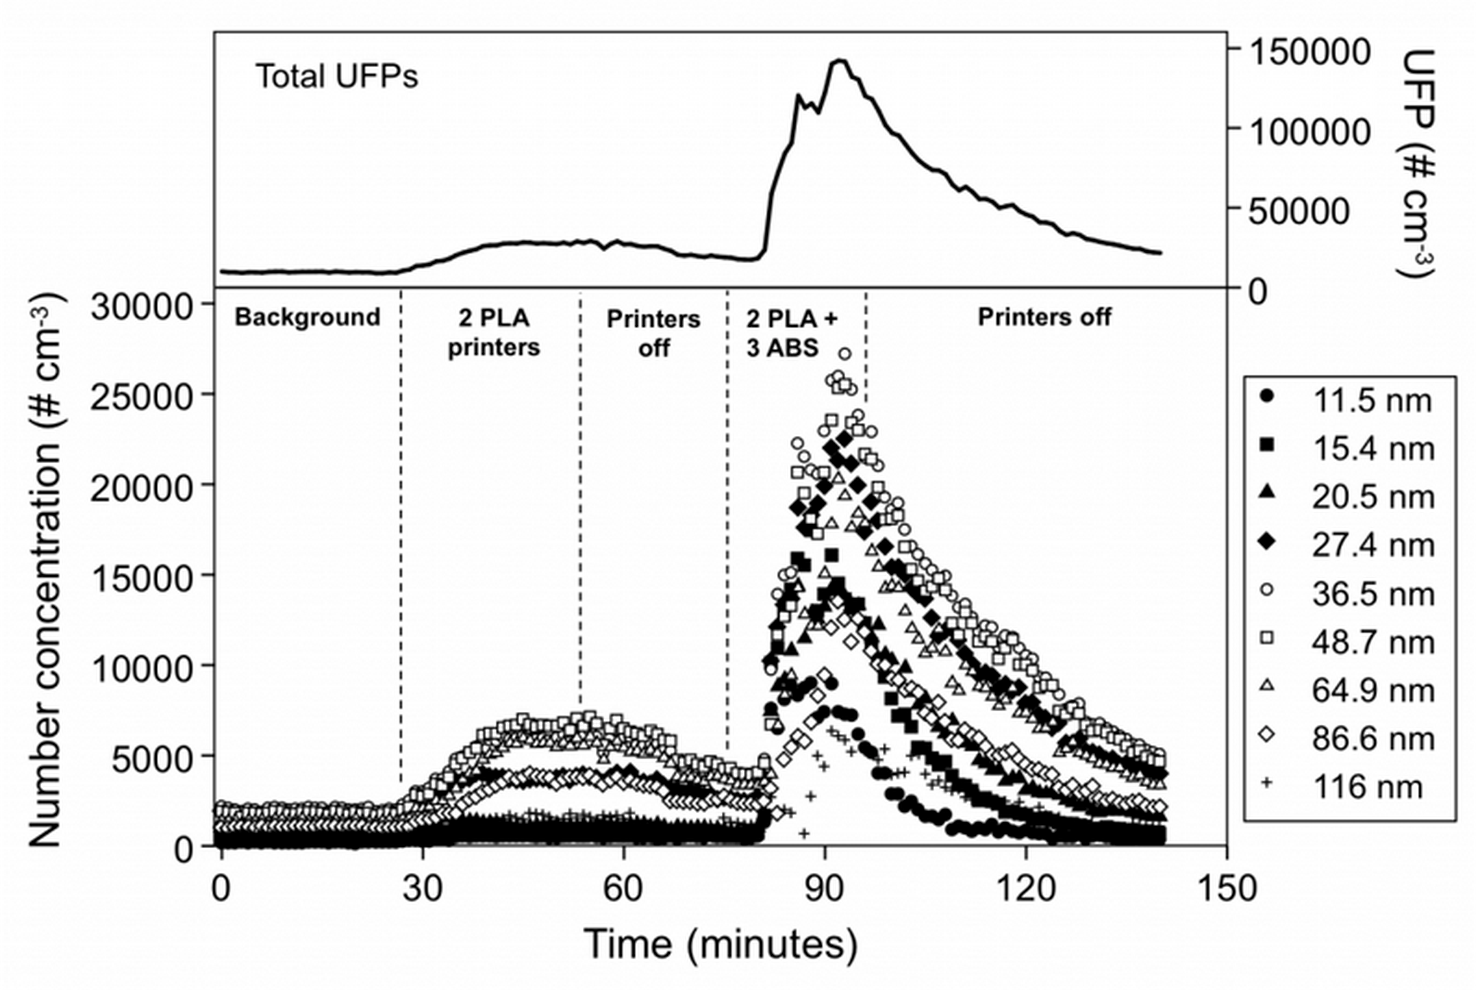 Ultrafine Particles From Desktop 3D Printers